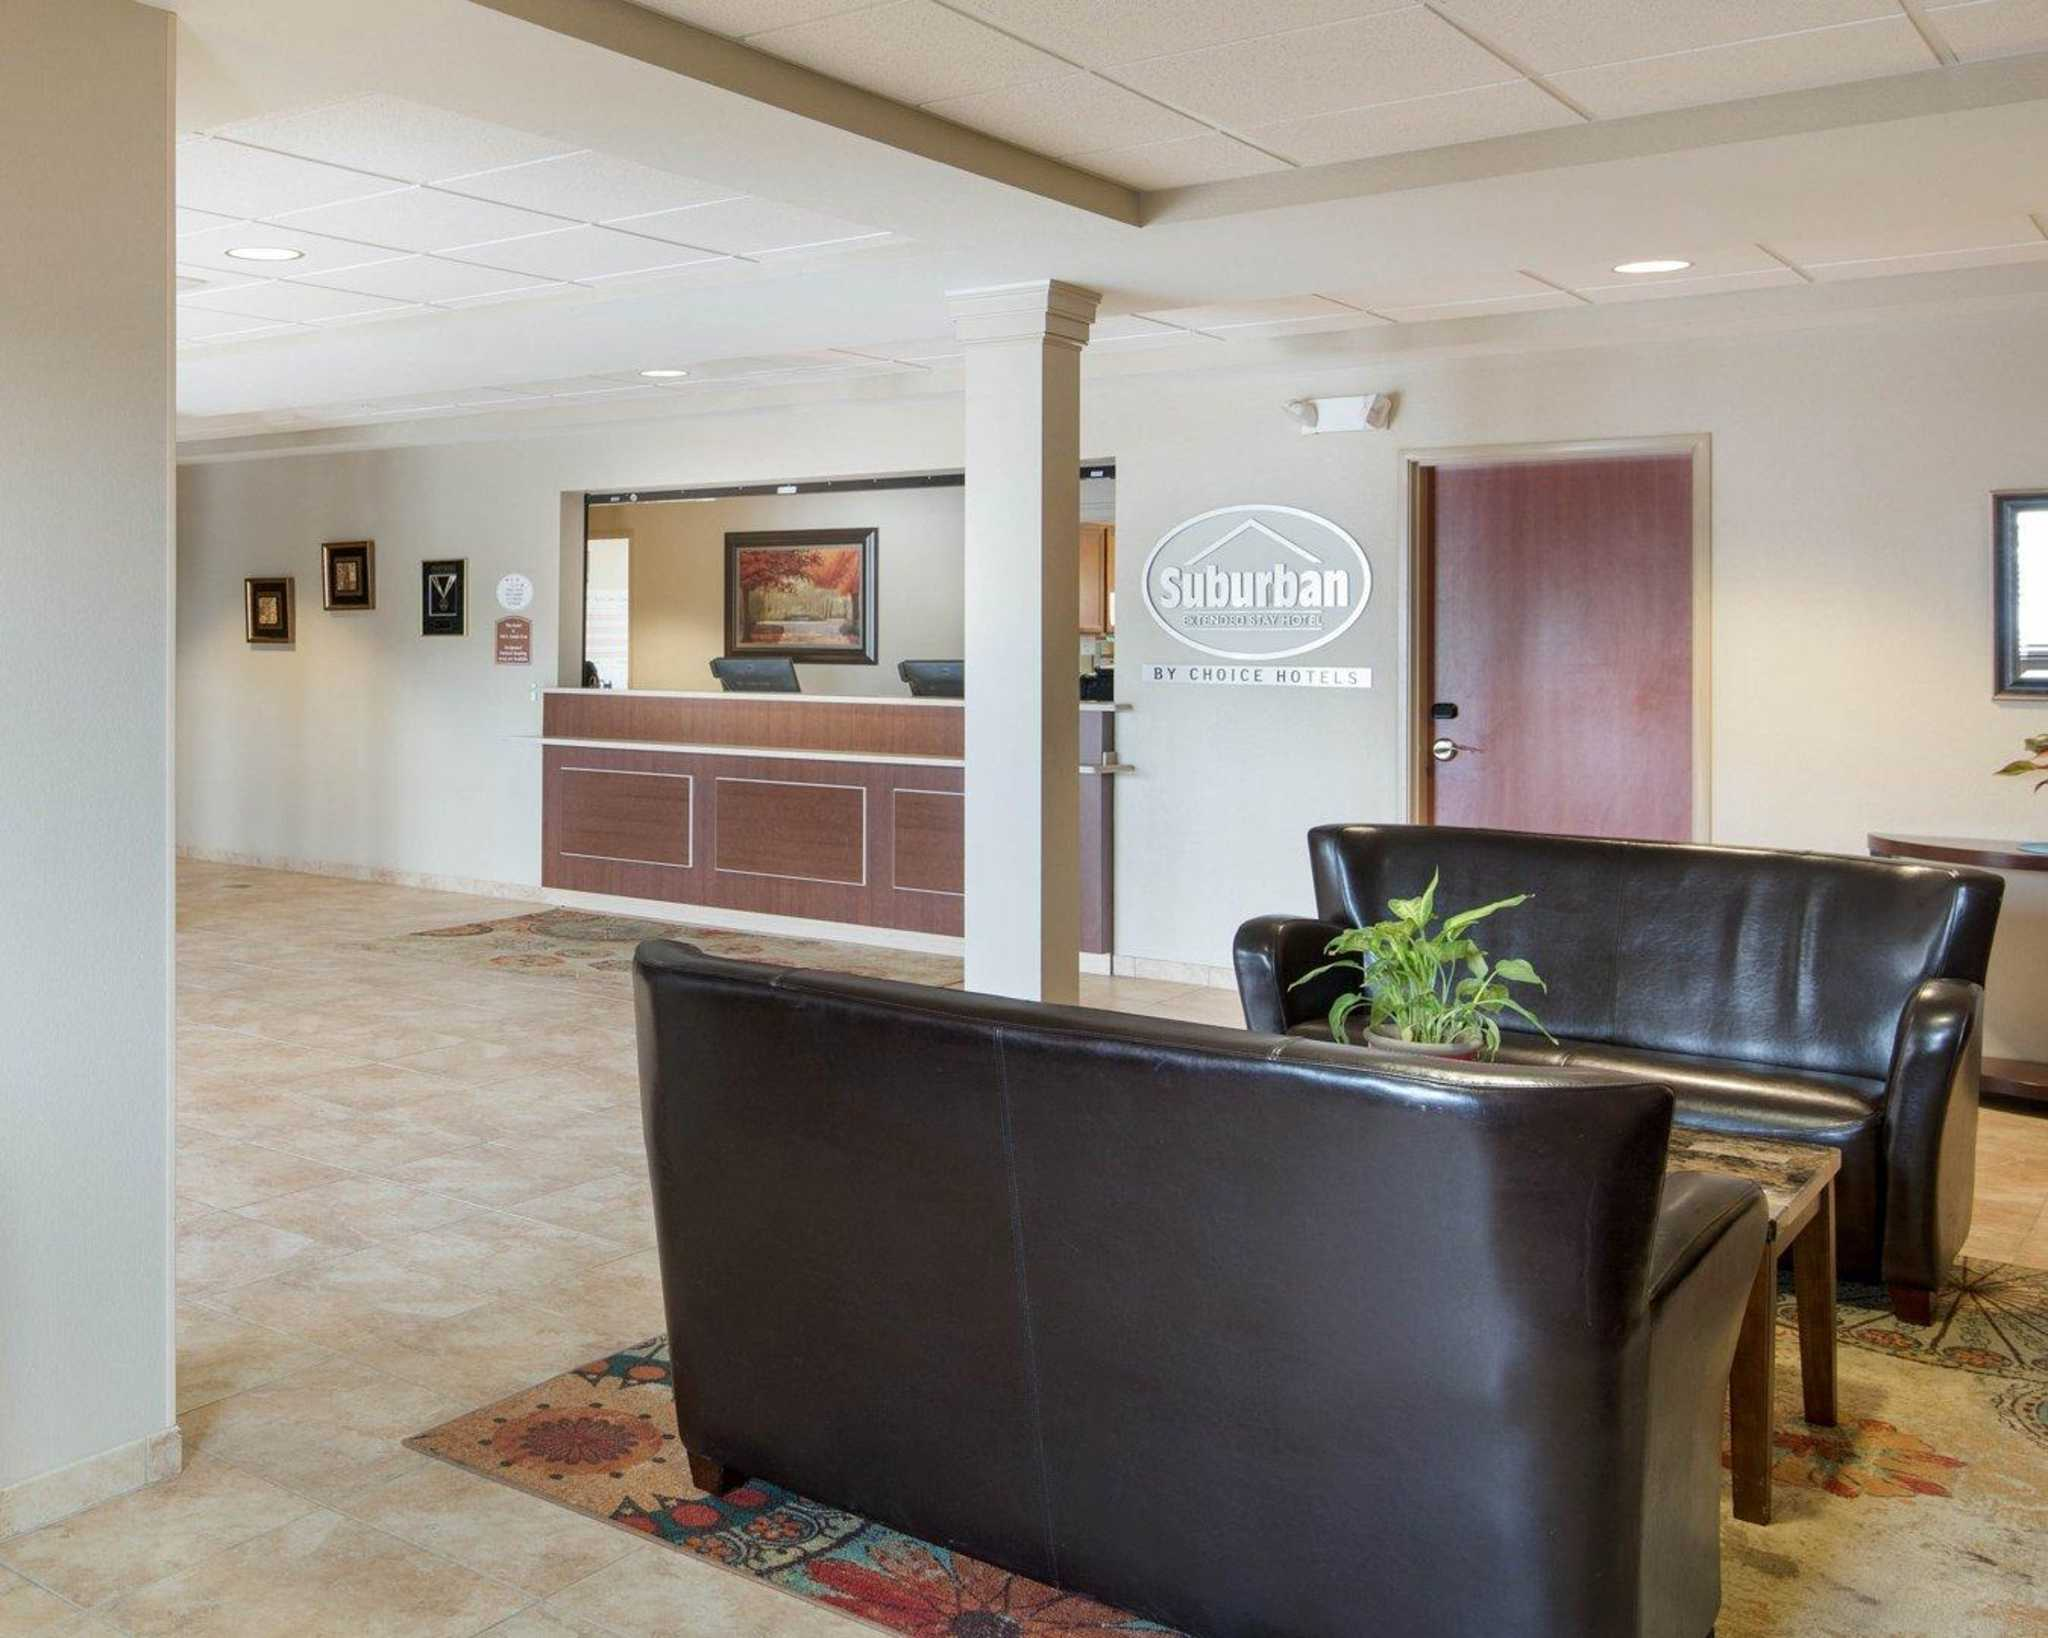 Suburban Extended Stay Hotel image 10